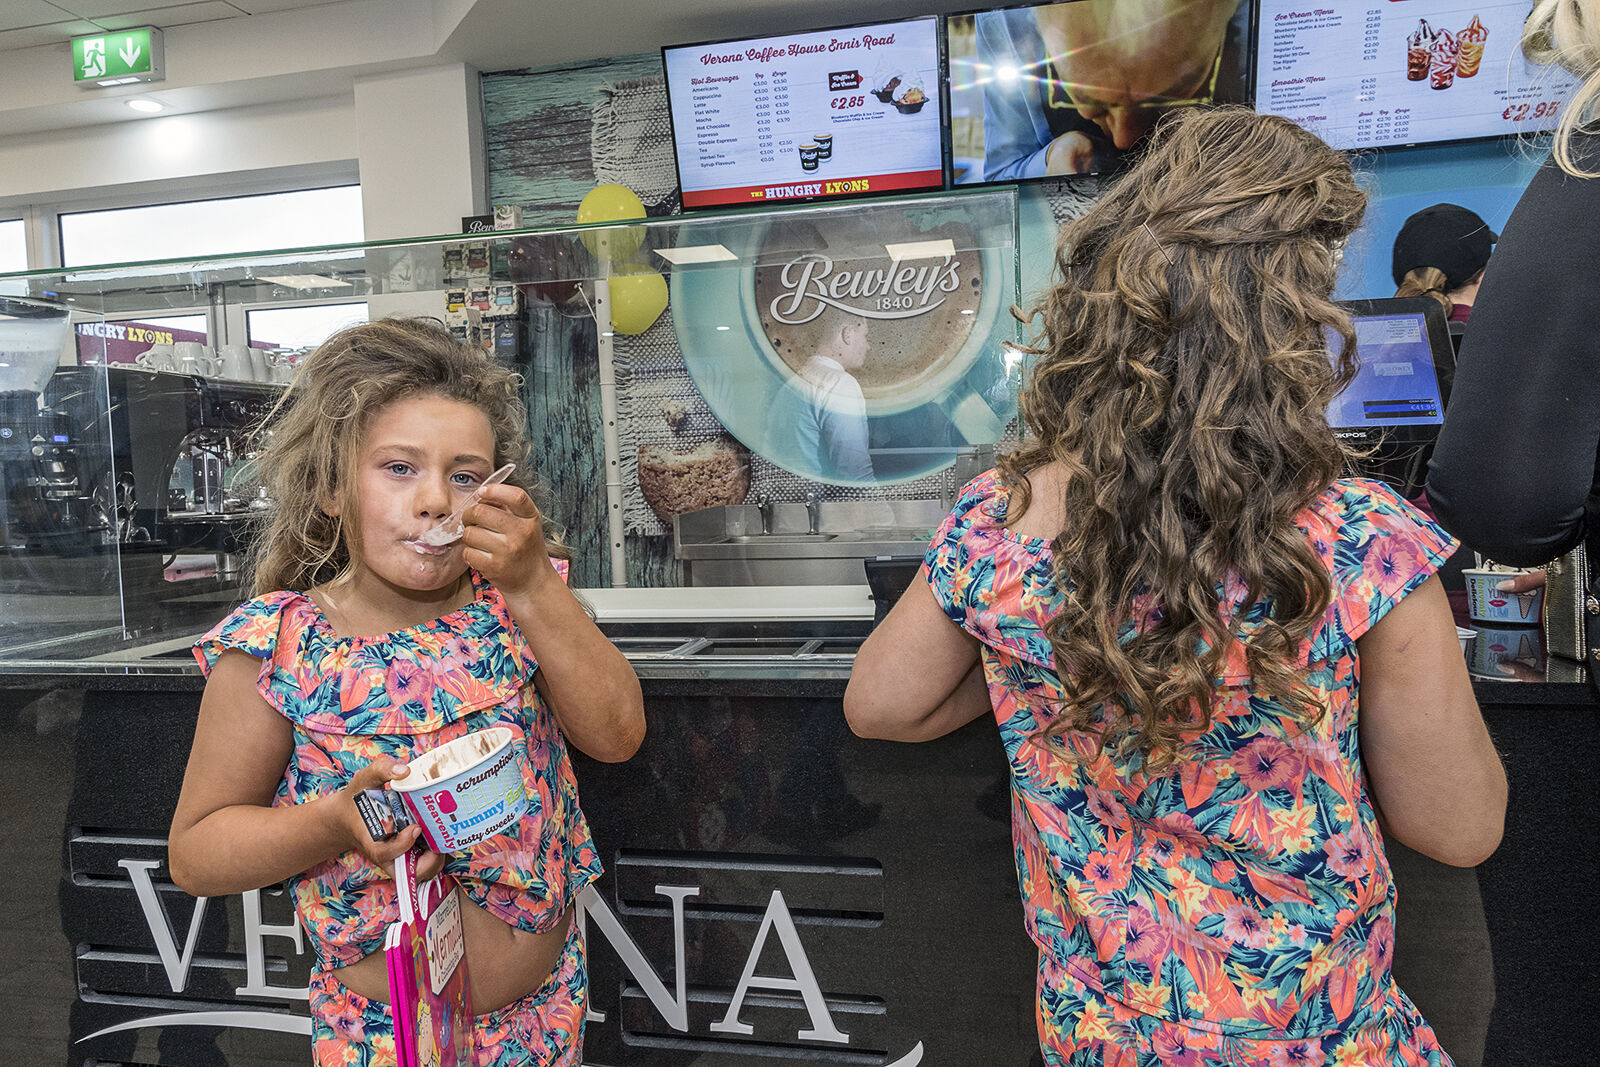 Faulkner Girl having Ice Cream, Limerick, Ireland 2020